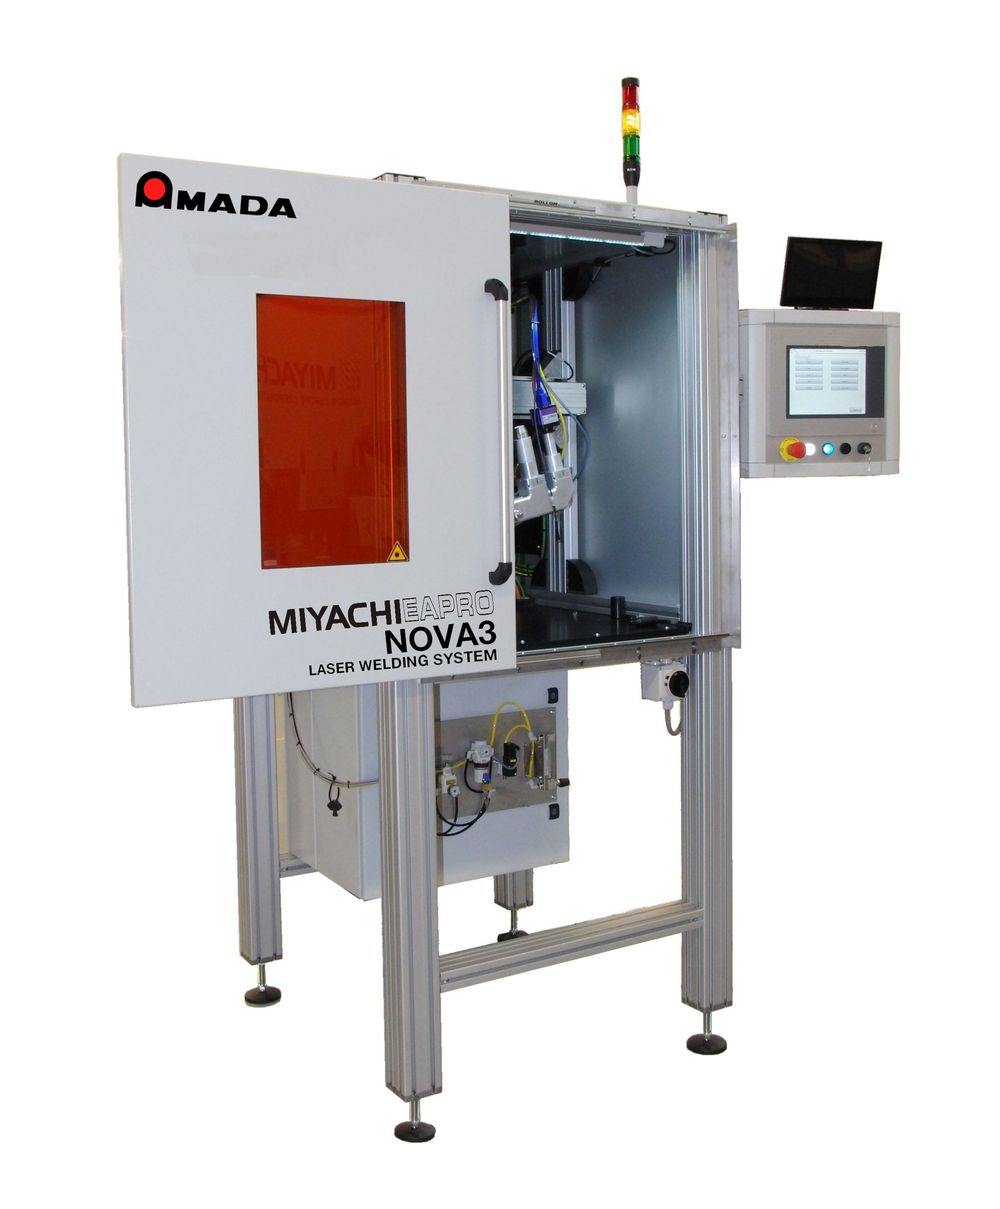 AMADA MIYACHI EUROPE offers a new Laser Welding Workstations